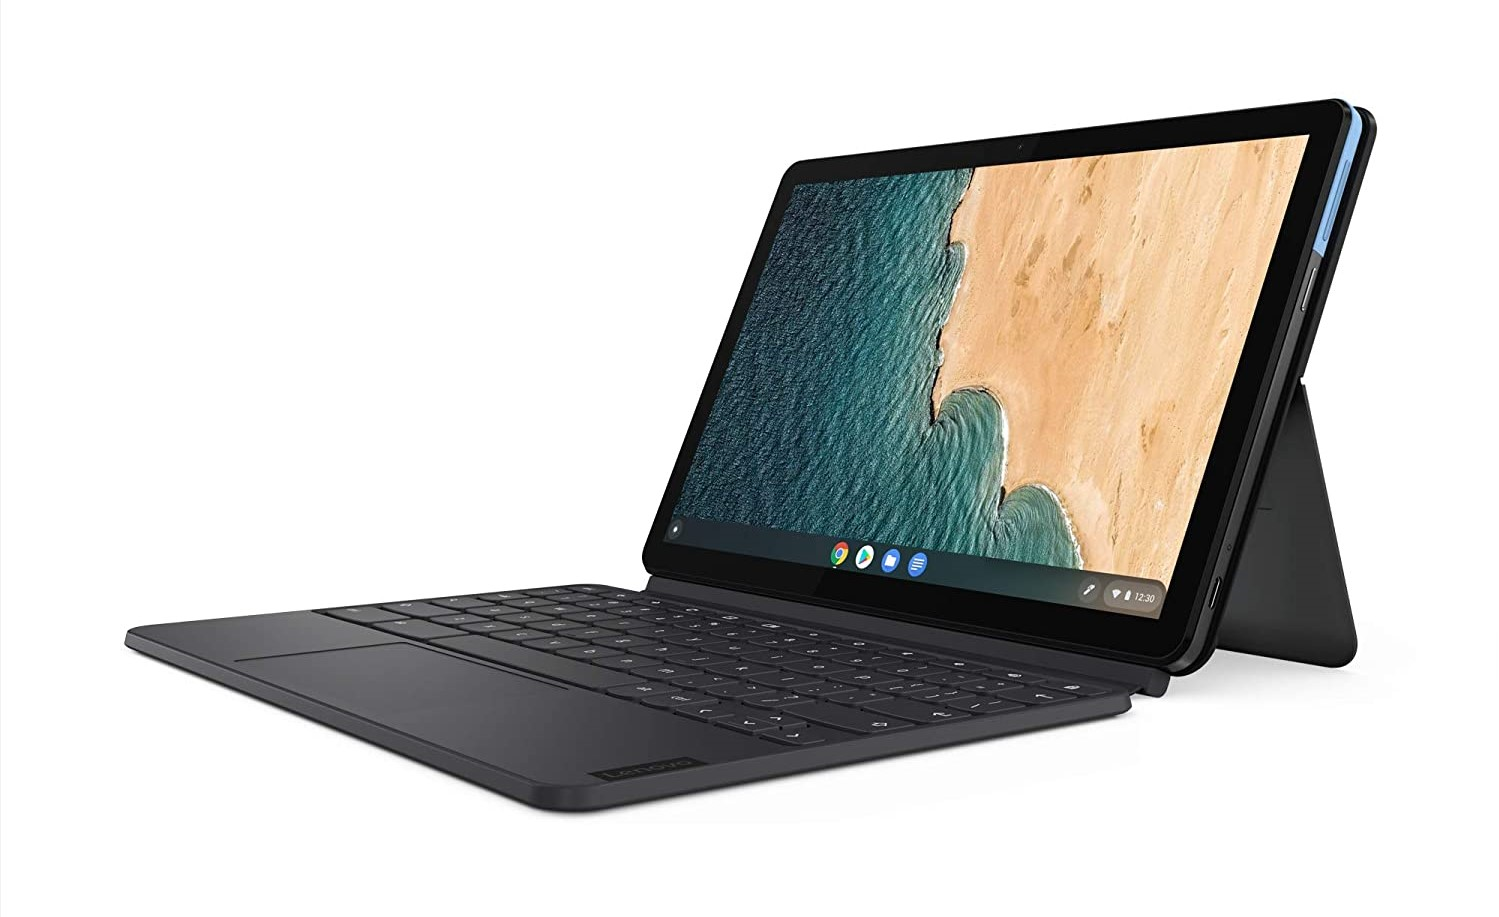 The Lenovo Chromebook Duet is a capable two-in-one Chromebook for those on a budget. We haven't given it a formal review on Ars, but the Dealmaster hears it might make its way into one of our gift guides this holiday season...